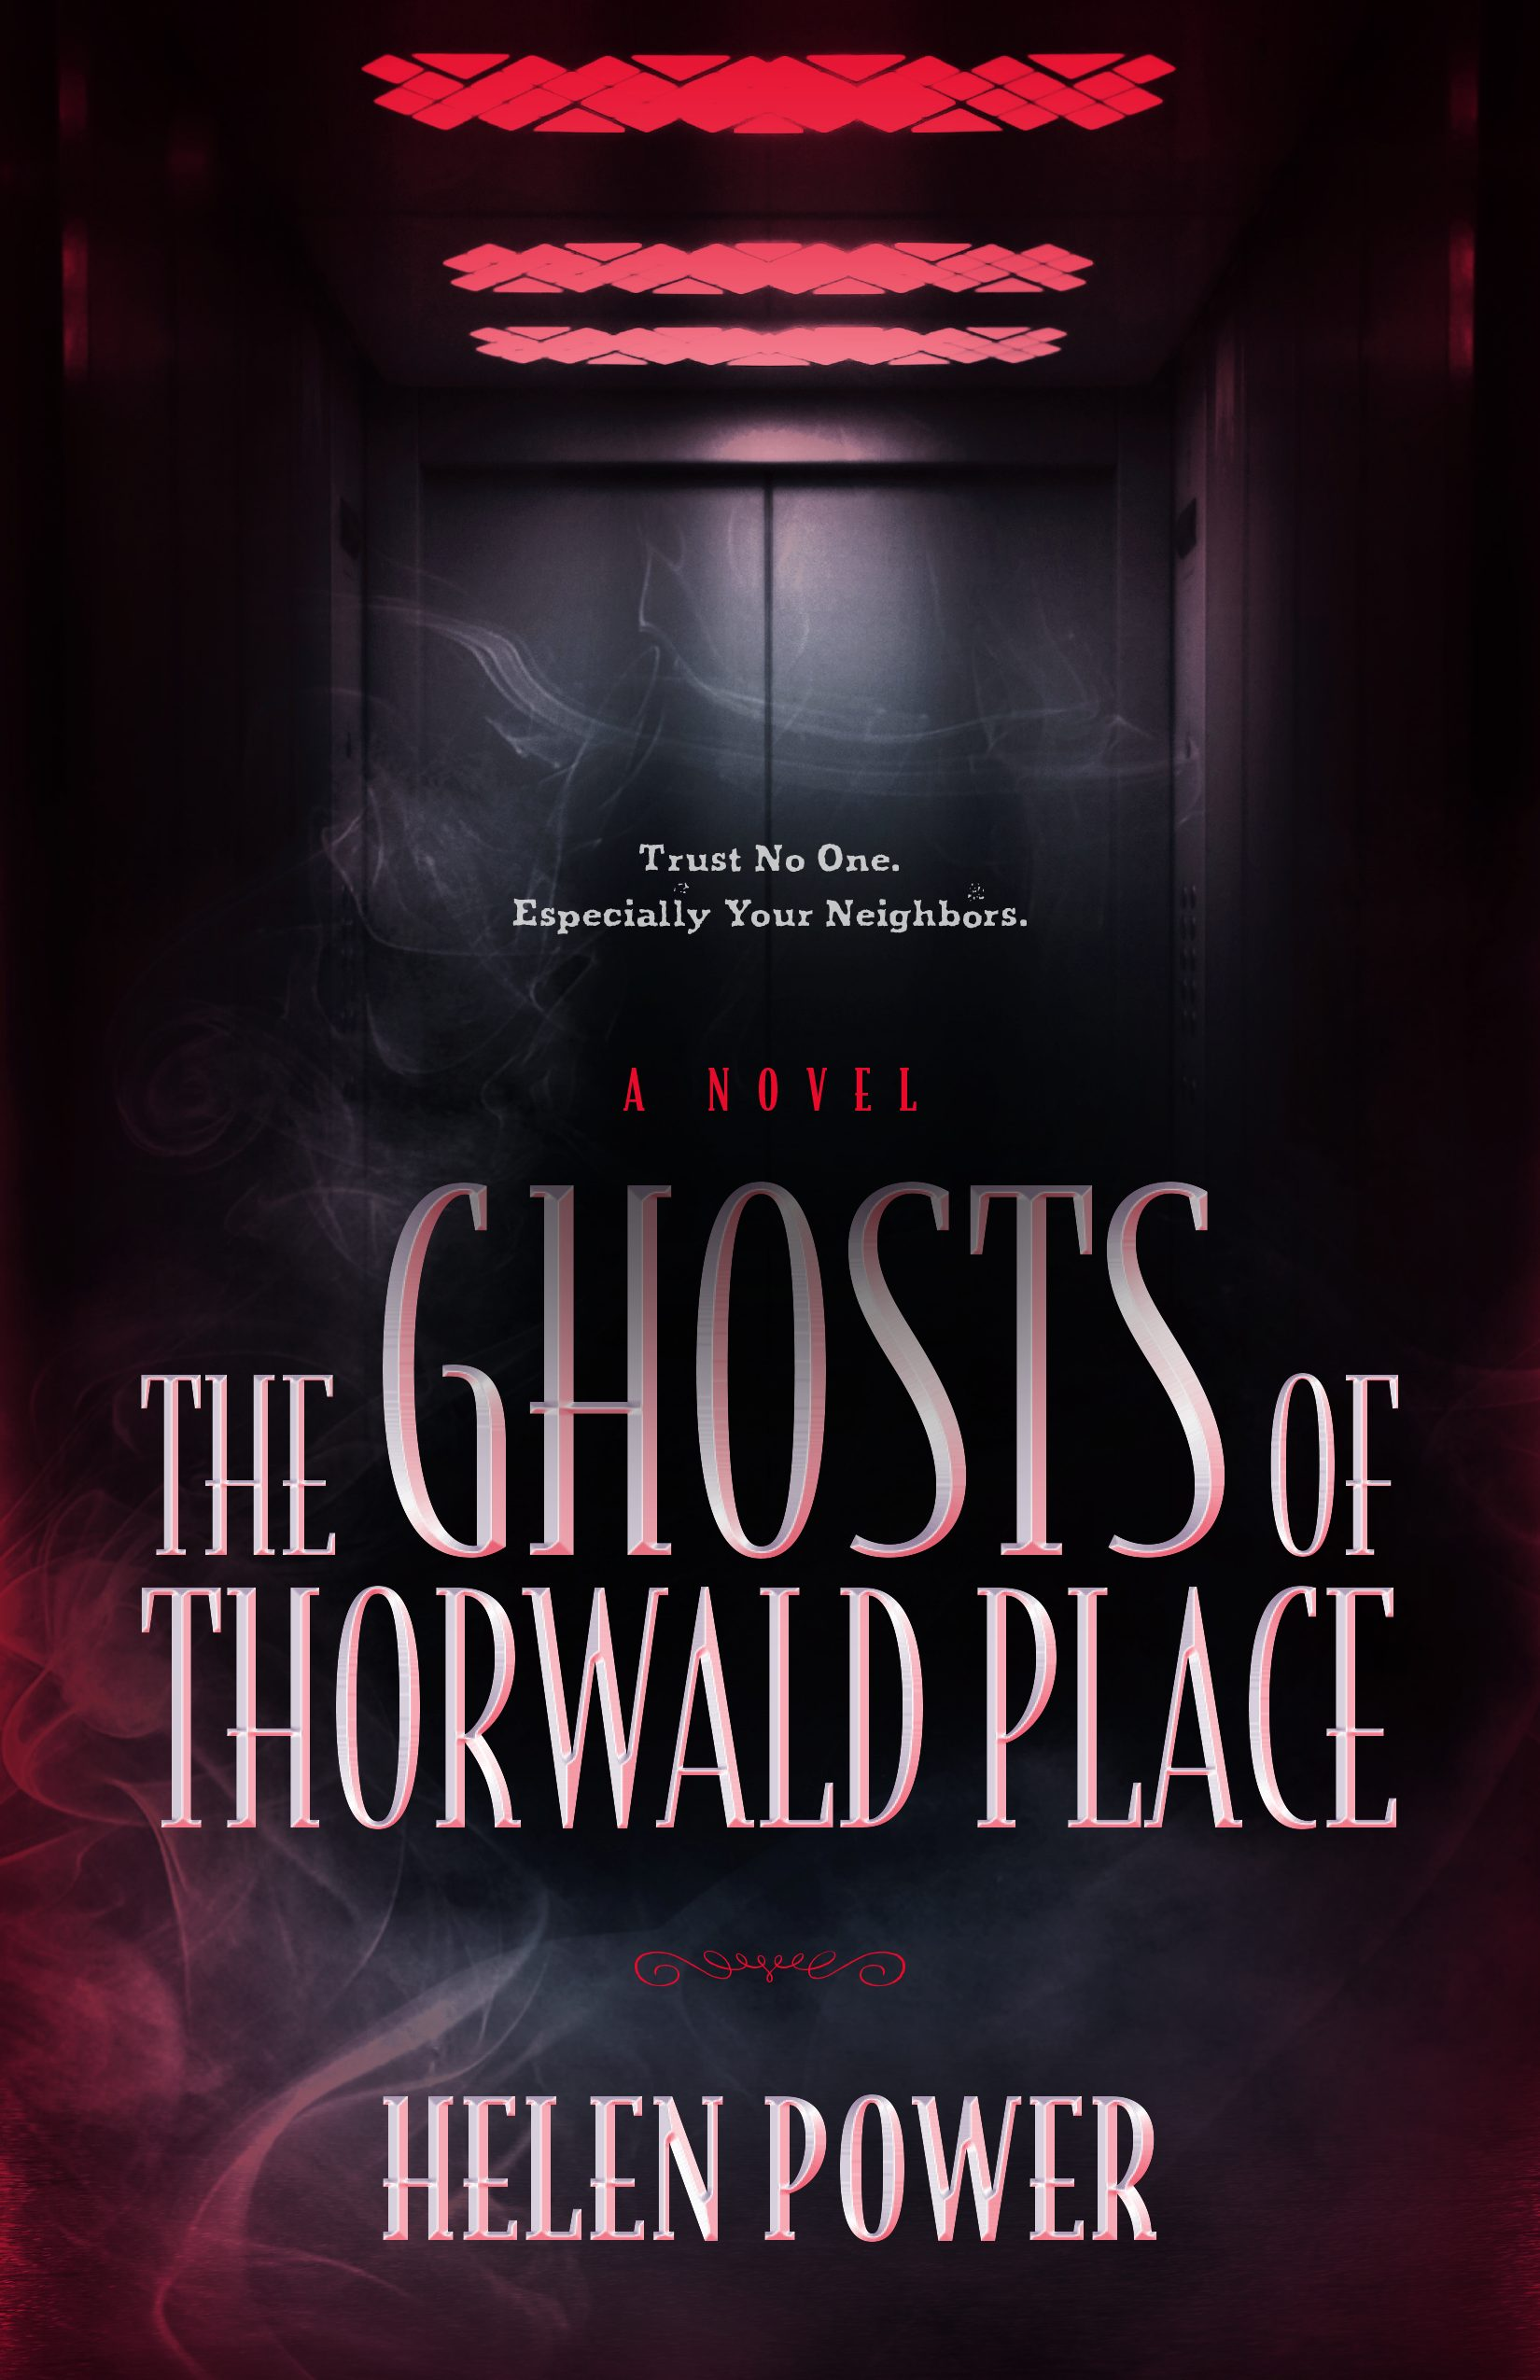 The Ghosts of Thorwald Place by Helen Power